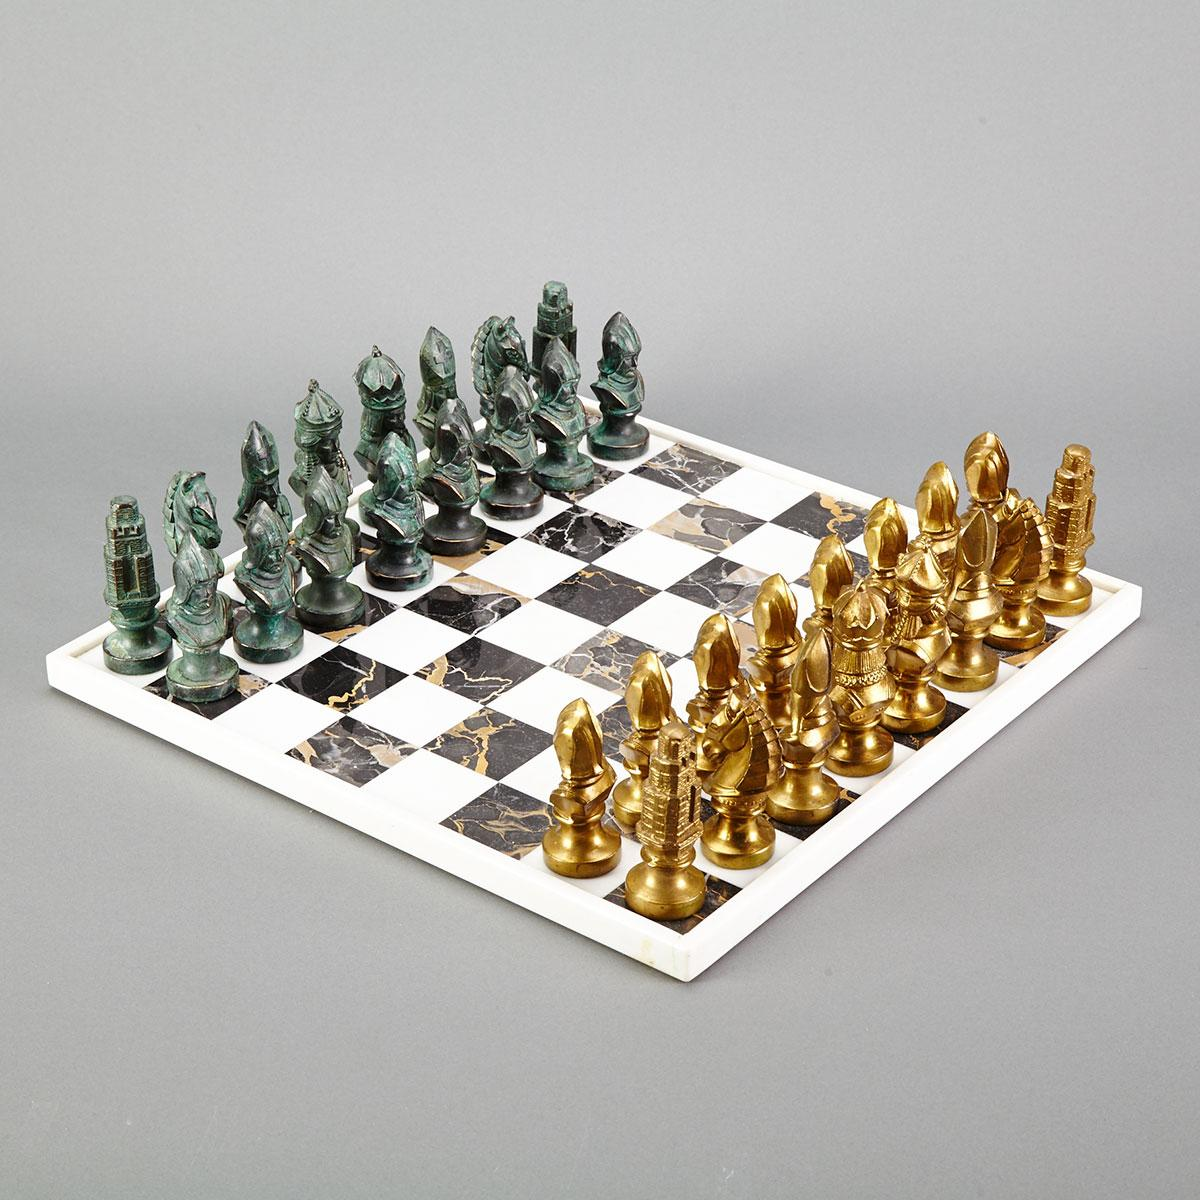 Italian Gilt and Bronze Patinated Metal Chess Set, c.1960